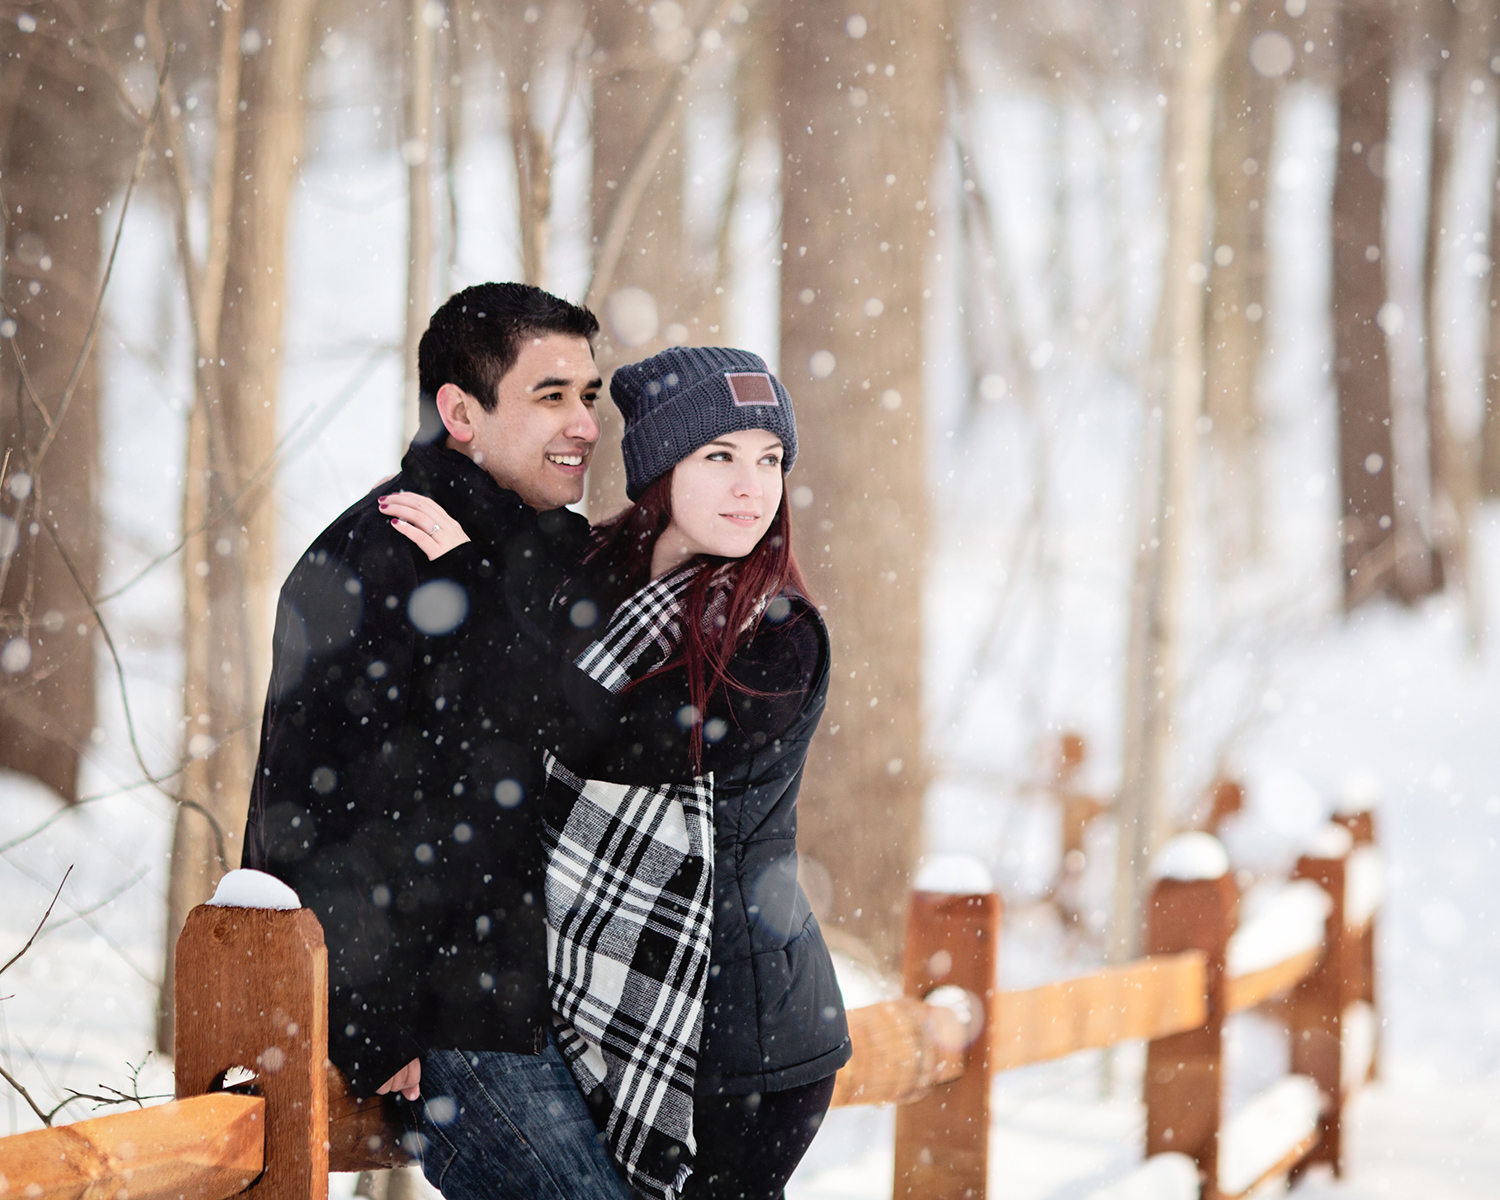 KM Engagement | Winter Engagement Photoshoot | Snowy Photoshoot | Michigan Couples Snow Photoshoot | E-Session | Alyssia Booth's Candid & Studio | Michigan Wedding Photographer | www.abcandidstudio.com